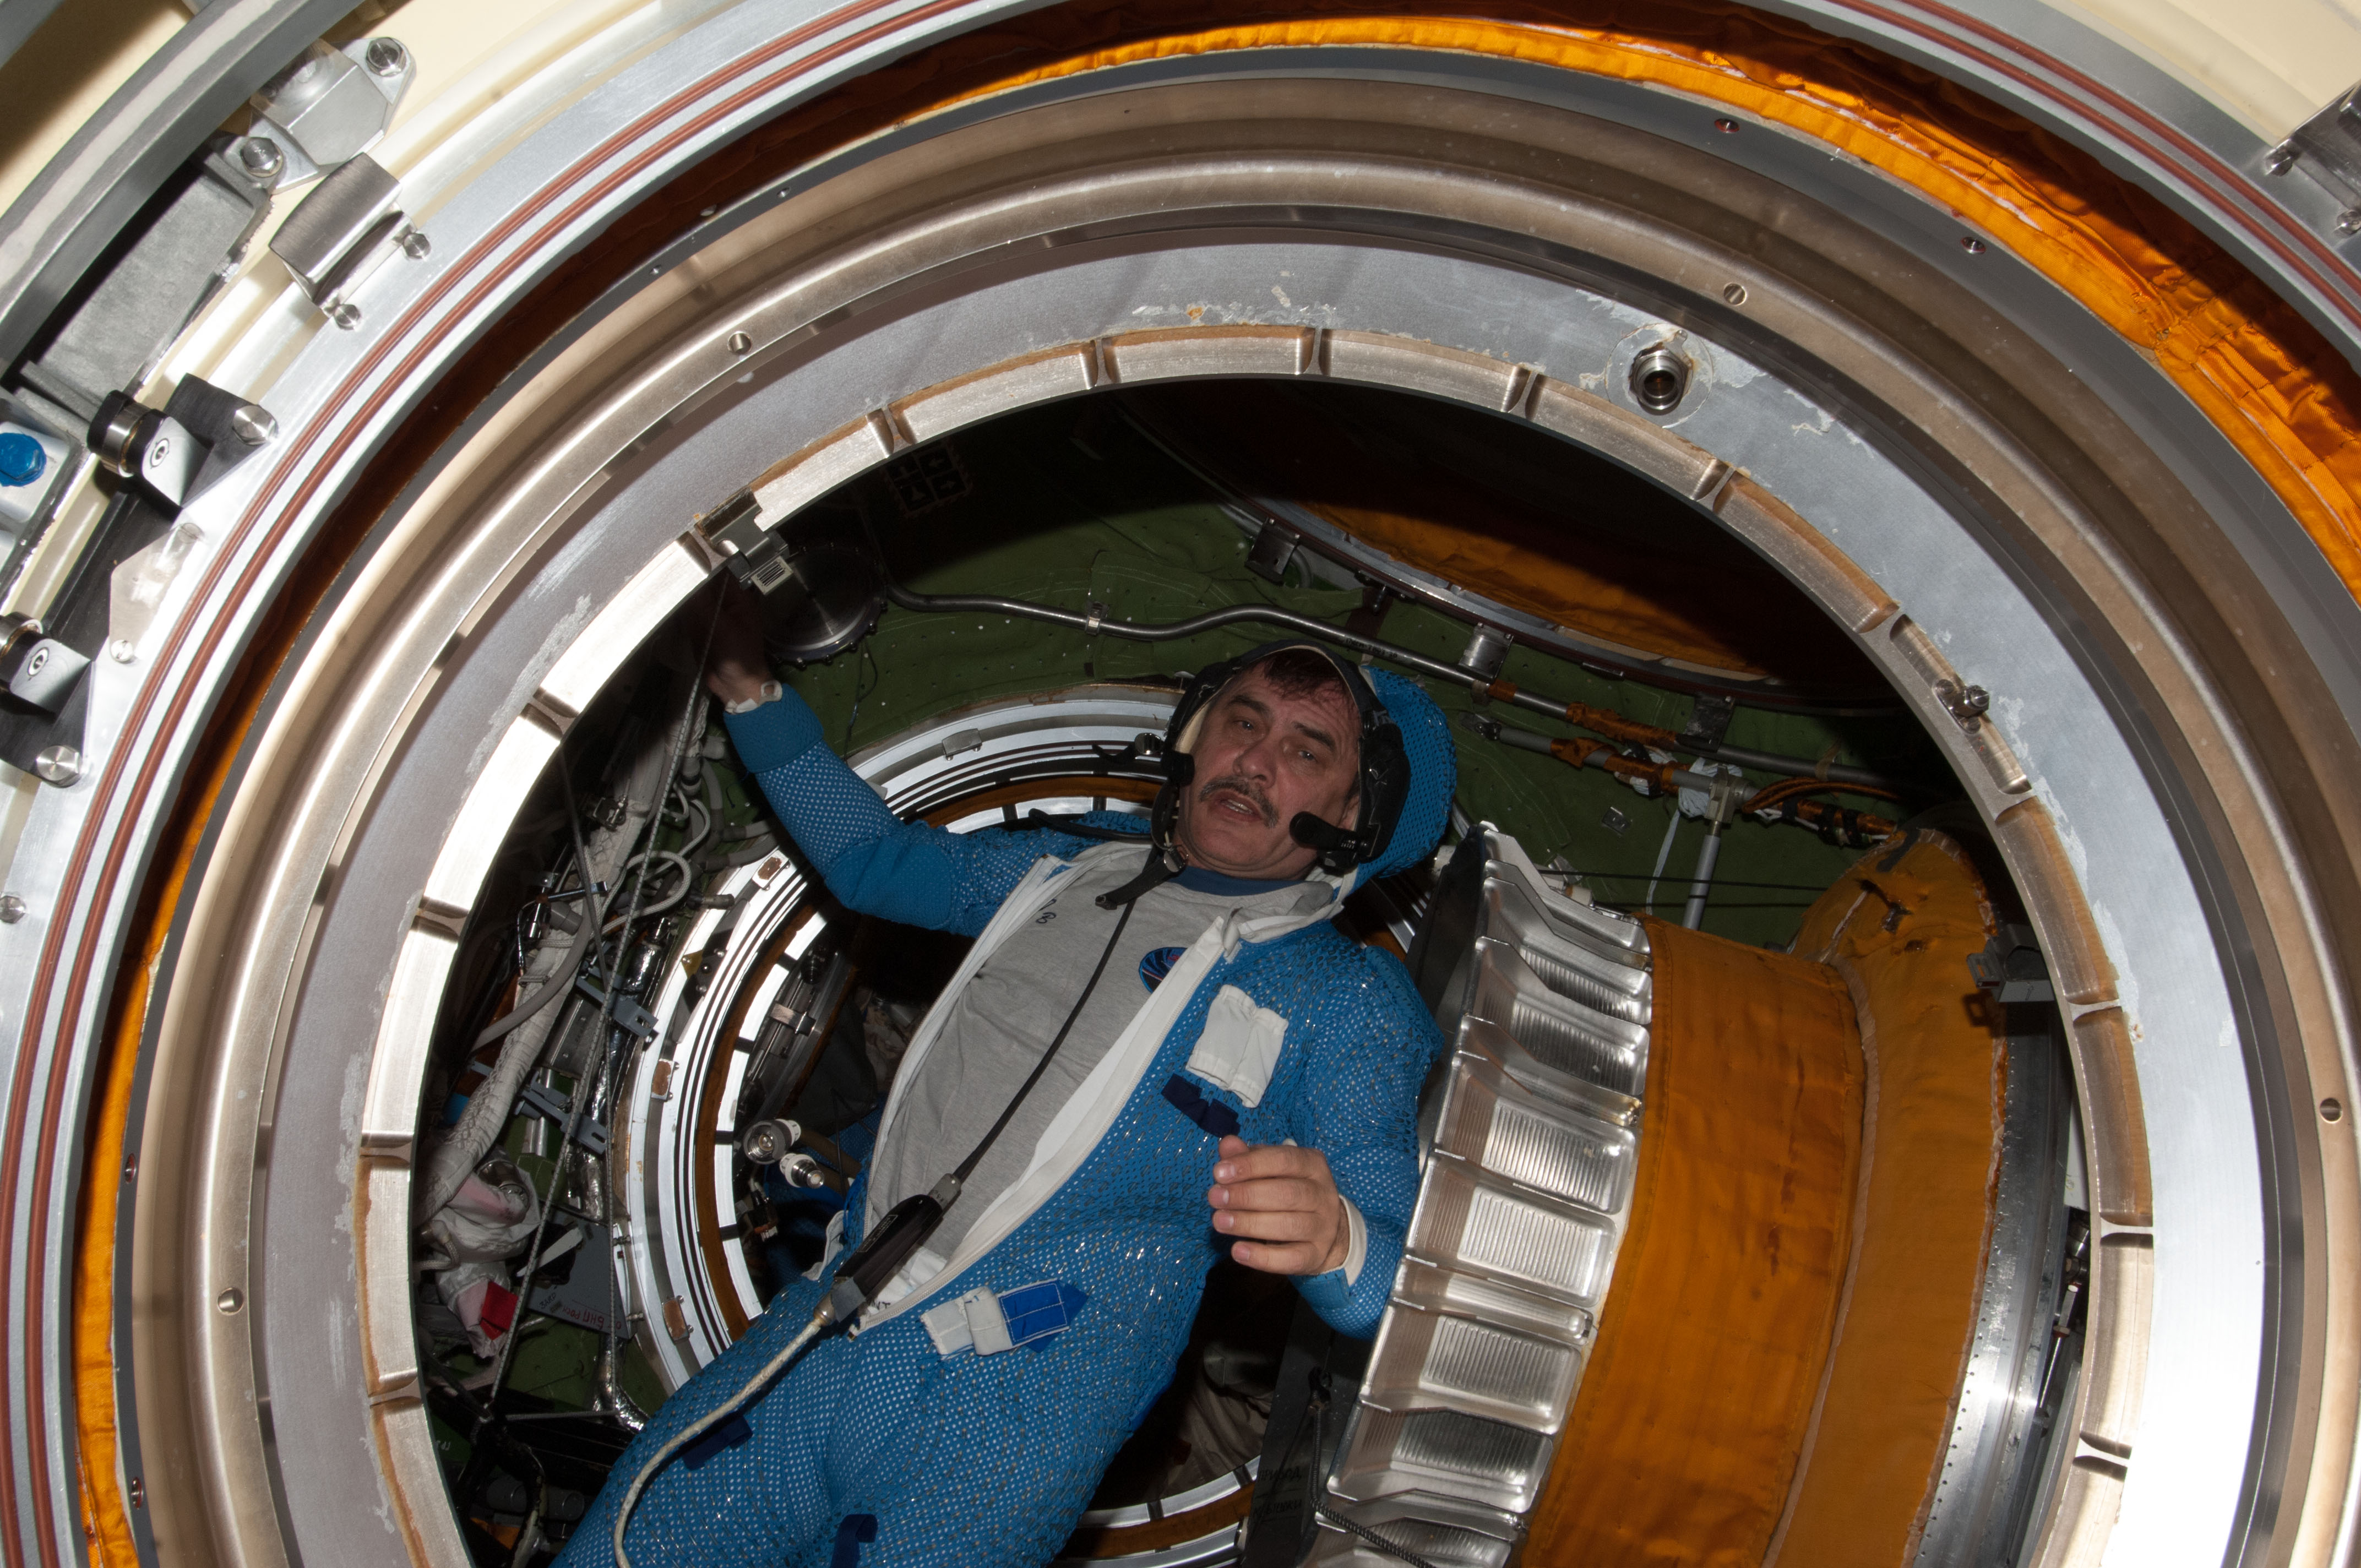 Russian cosmonaut Pavel Vinogradov Ready For Spacesuit